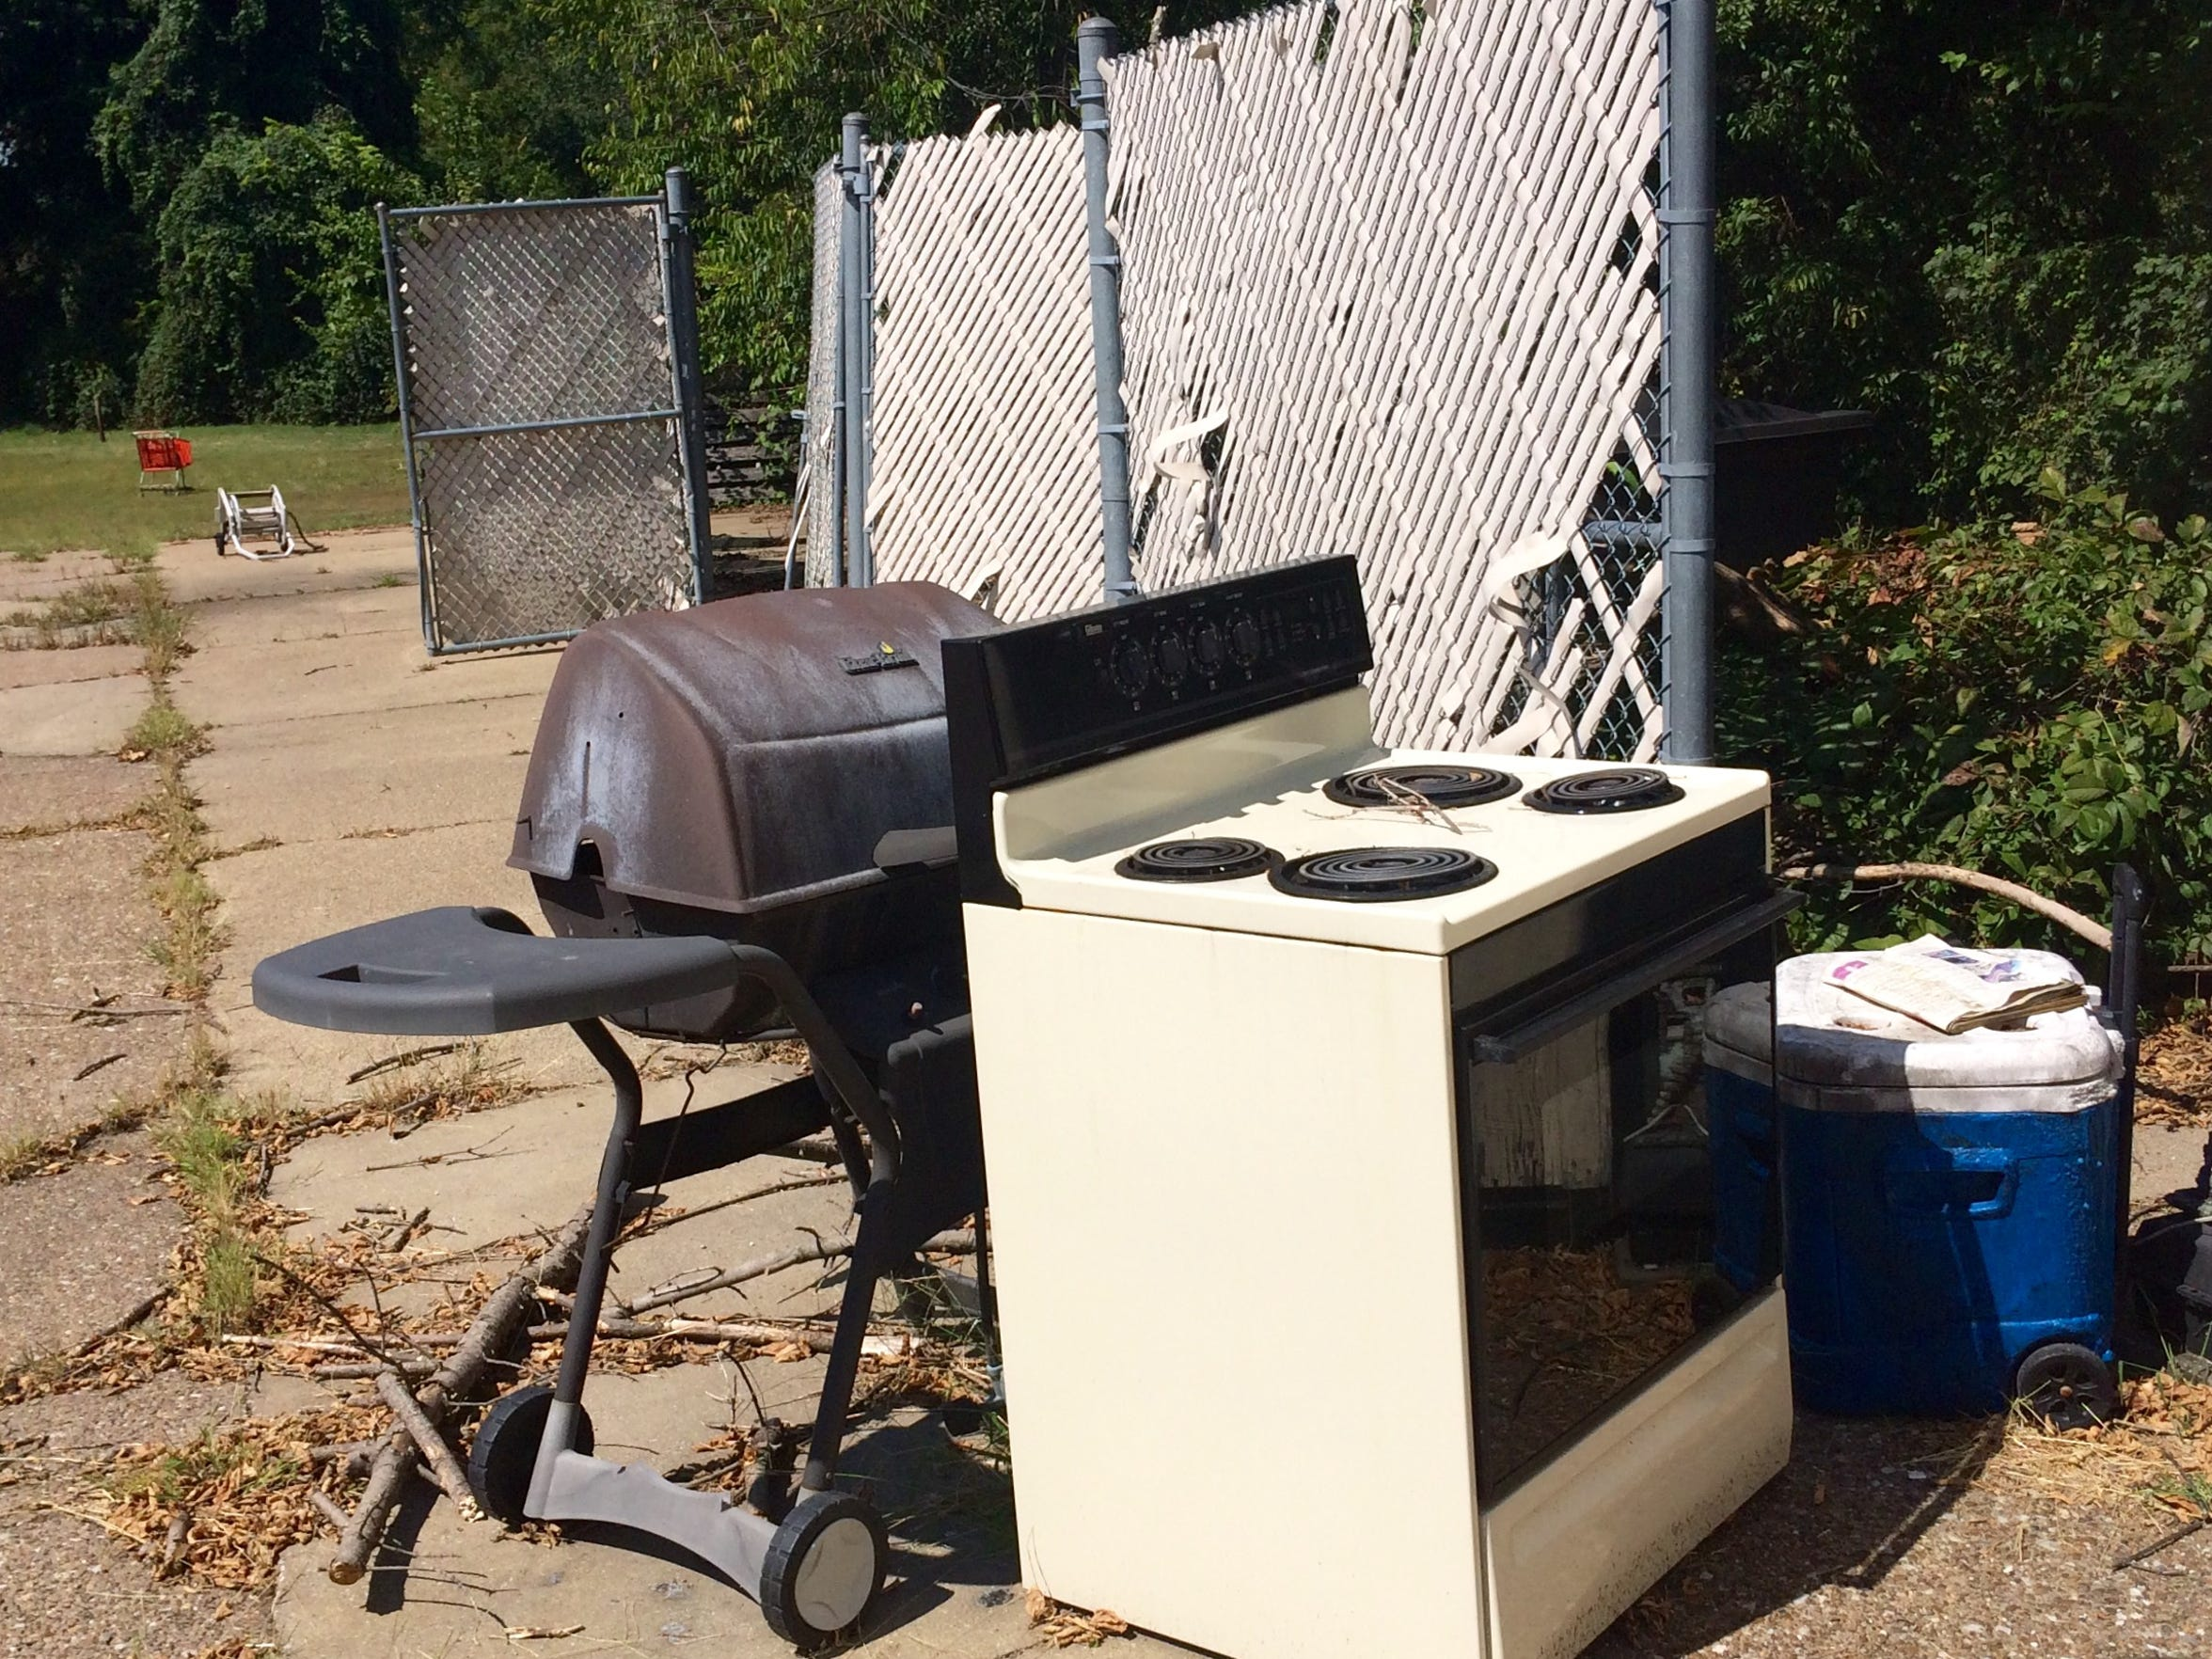 A discarded grill and home oven in the rear of the